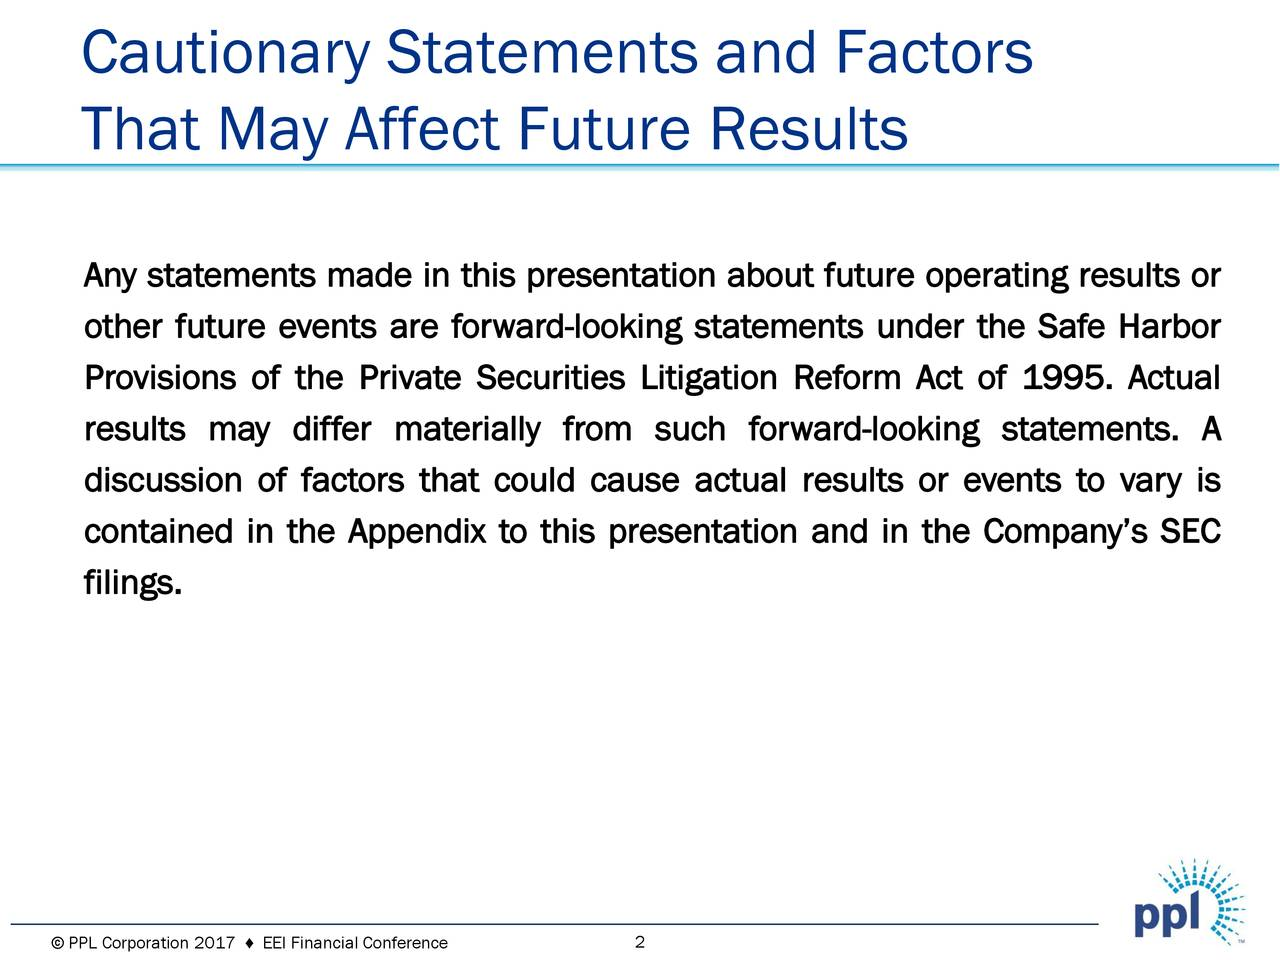 That May Affect Future Results Any statements made in this presentation about future operating results or other future events are forward-looking statements under the Safe Harbor Provisions of the Private Securities Litigation Reform Act of 1995. Actual results may differ materially from such forward-looking statements. A discussion of factors that could cause actual results or events to vary is contained in the Appendix to this presentation and in the Company's SEC filings.